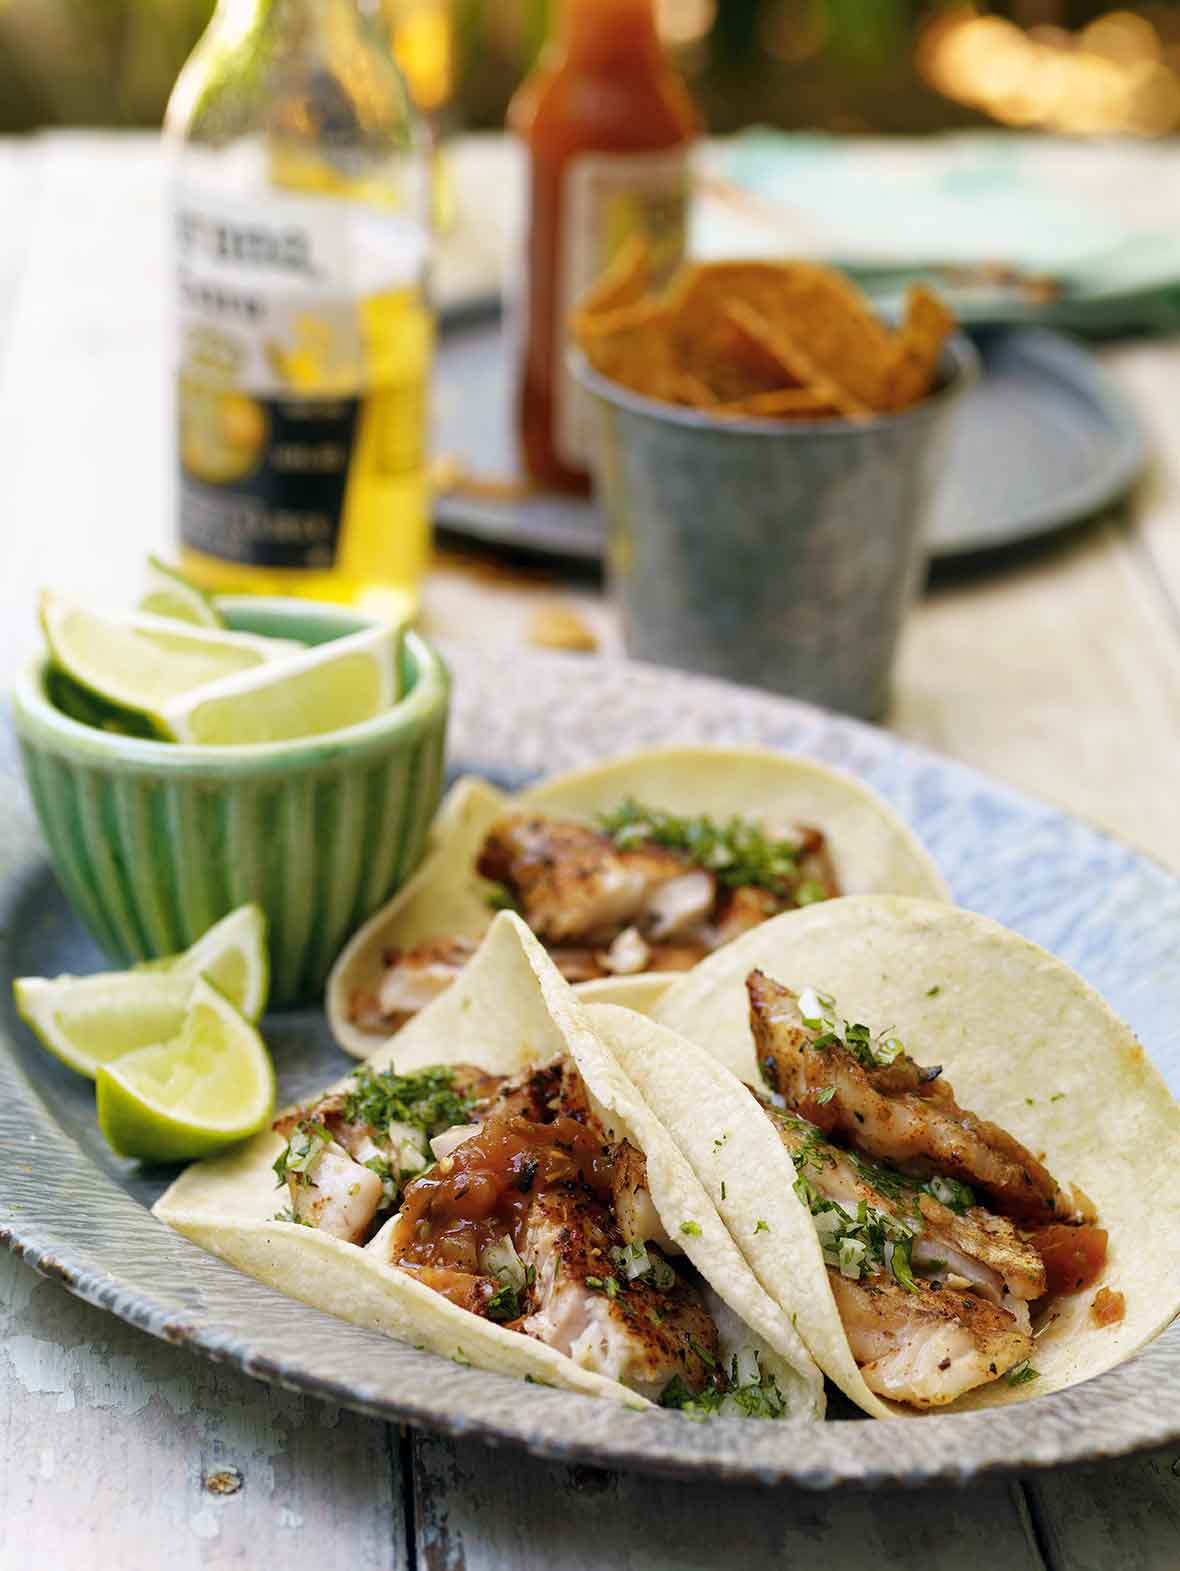 Enamel platter of three grilled red snapper tacos topped with cilantro and line, with lime wedges, beer, and chips on the side